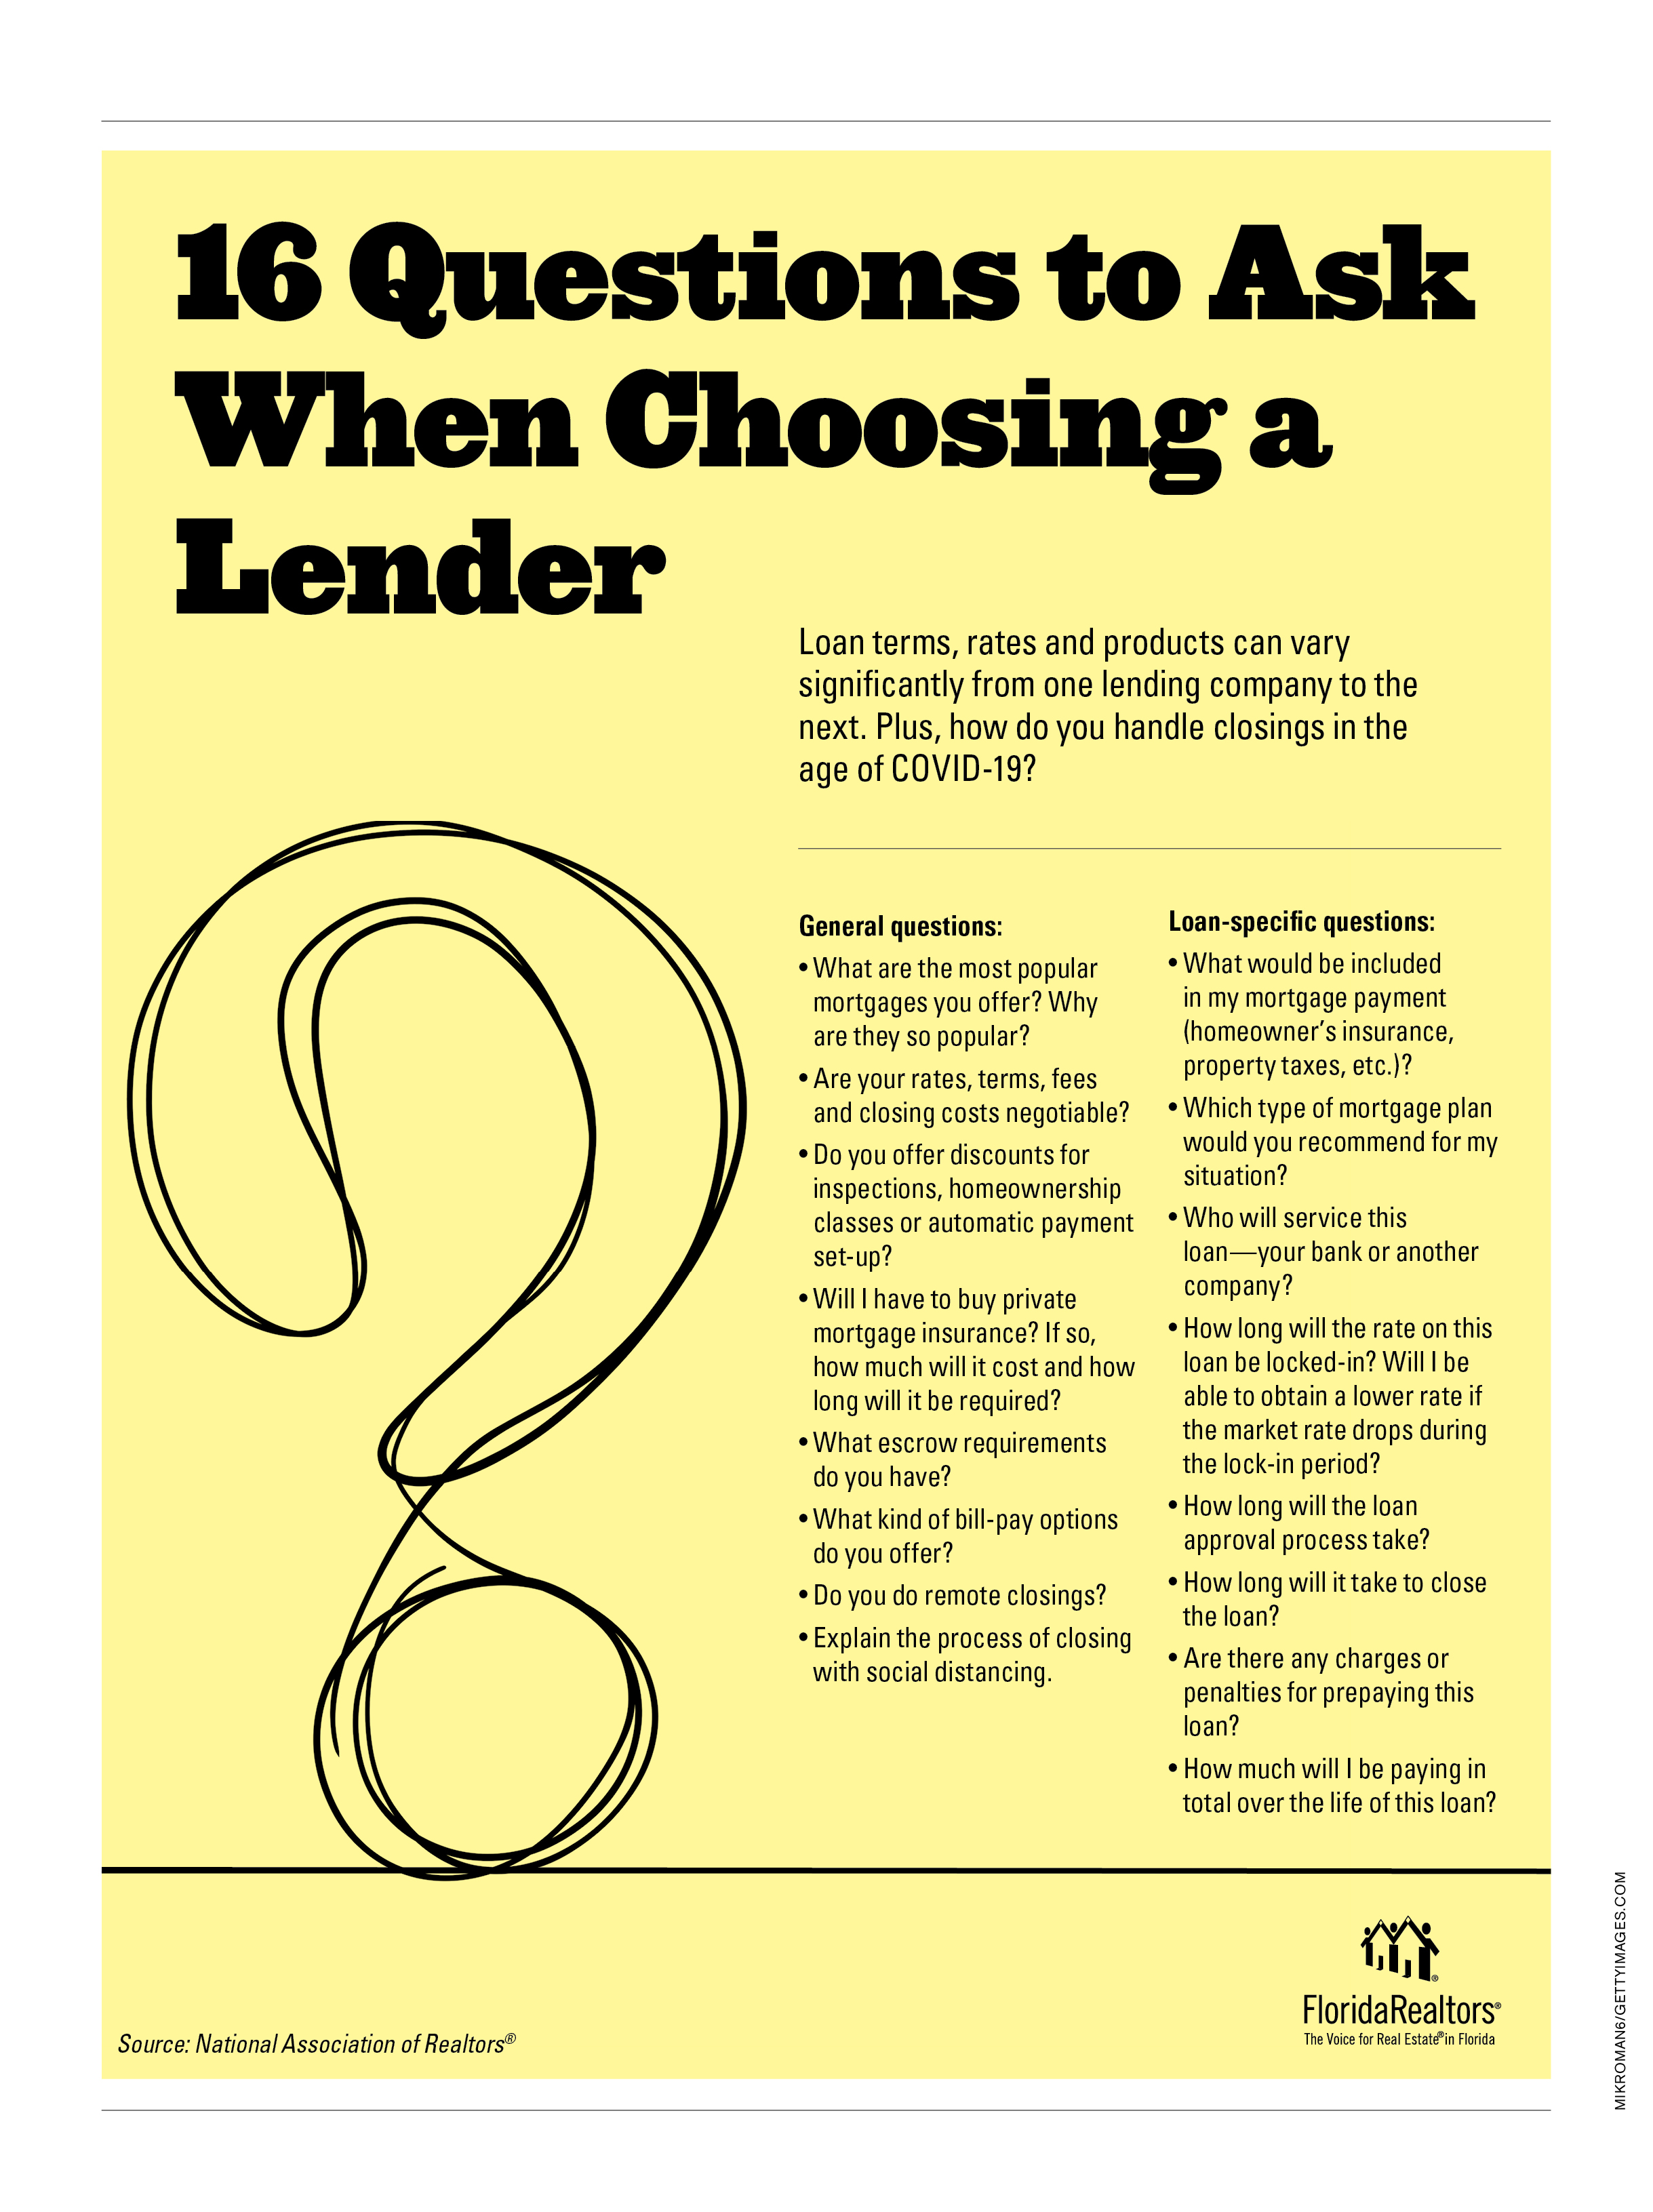 Questions to ask when choosing a lender